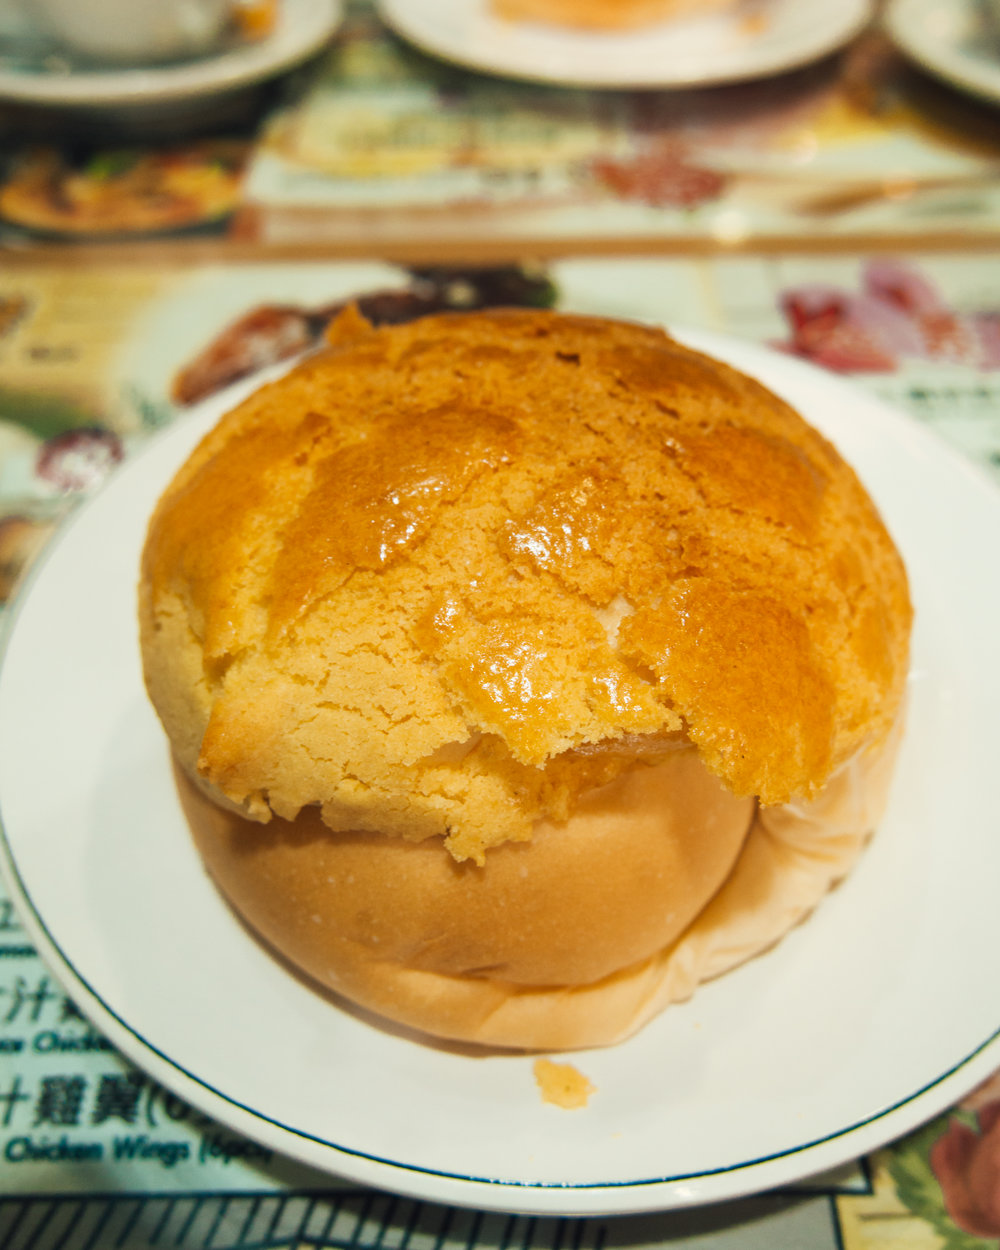 Pineapple Bun in Hong Kong